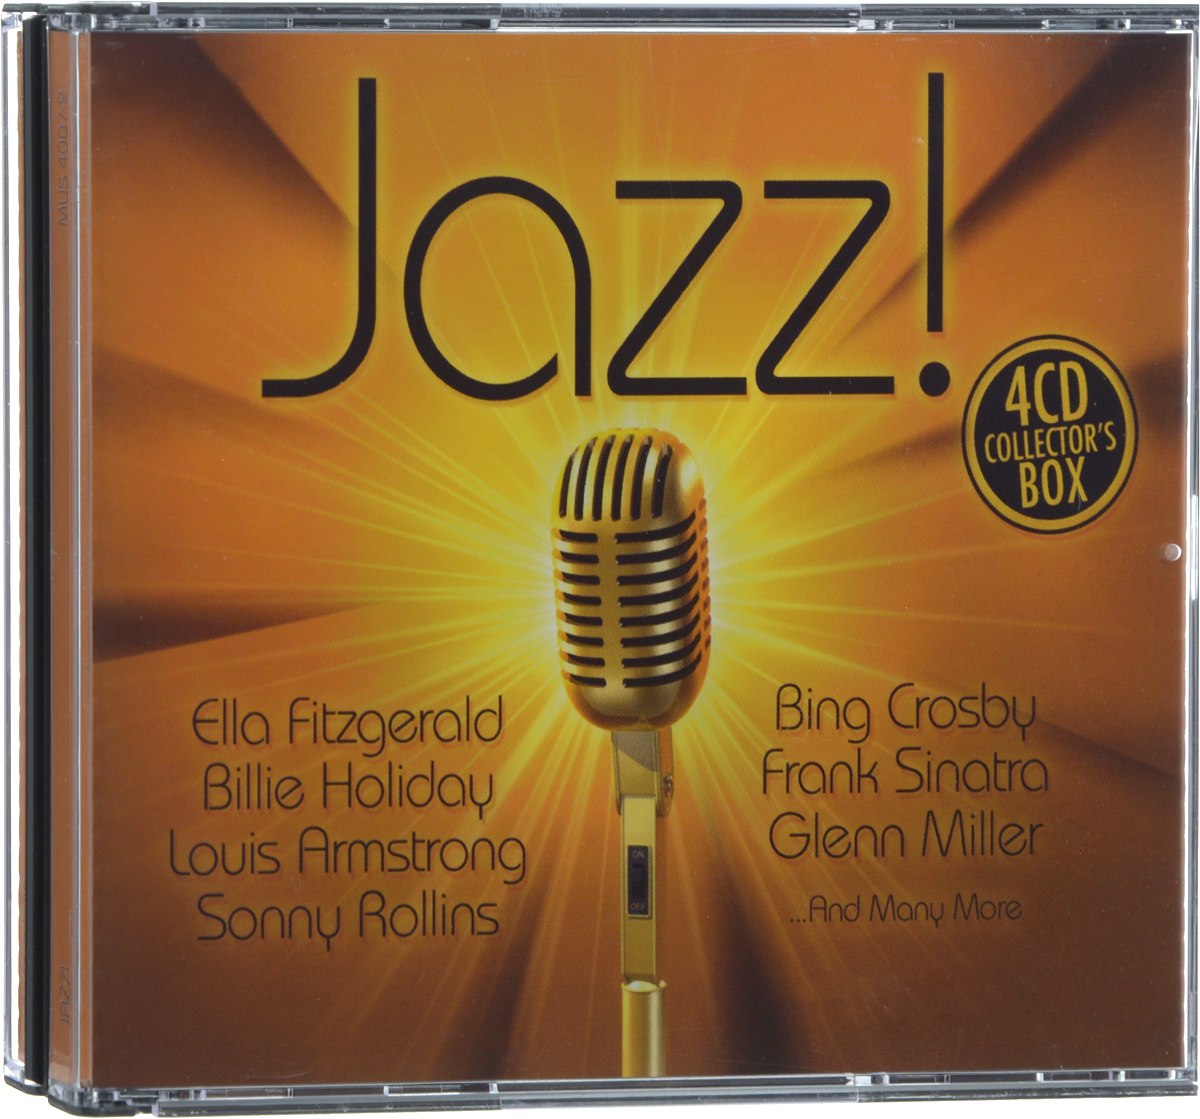 Бенни Гудман,The Glenn Miller Orchestra,The Count Basie Orchestra,Coleman Hawkins All Star Octet,Duke Ellington And His Orchestra,Les Brown And His Band Of Renown,Isham Jones And His Orchestra,Teddy Powell And His Orchestra,Harry James & His Orchestra,Woody Herman & His Orchestra,Джон Кангас,Элла Фитцжеральд,Билли Холидей,Бинг Кросби,Луис Джордан,Фрэнк Синатра,Луи Прима,Джин Келли,Джуди Гарланд,Кэб Кэллоуэй,Каунт Бэйси Jazz! (4 CD) футболка orchestra футболка